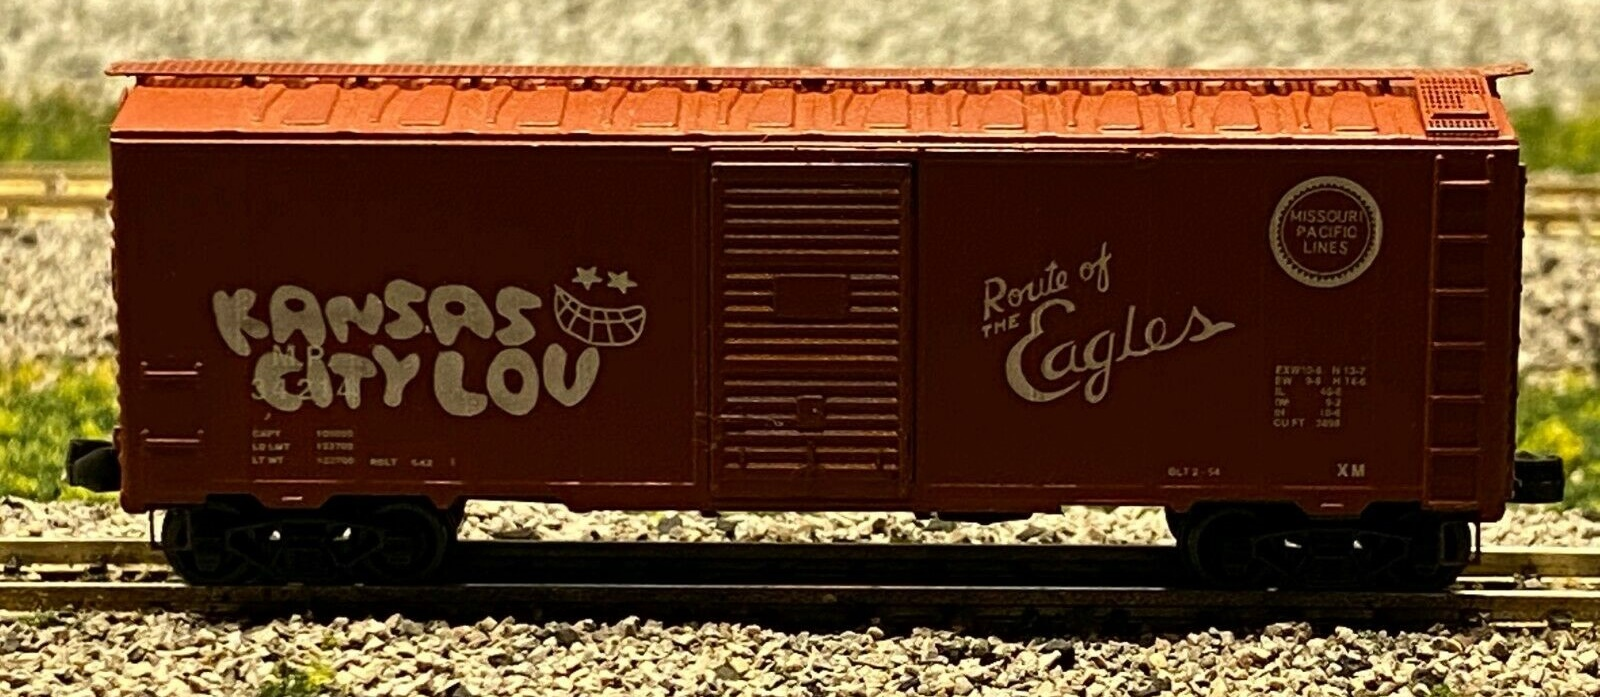 N Scale - Deluxe Innovations - 141521 - Boxcar, 40 Foot, AAR 1944 - Missouri Pacific - 34214